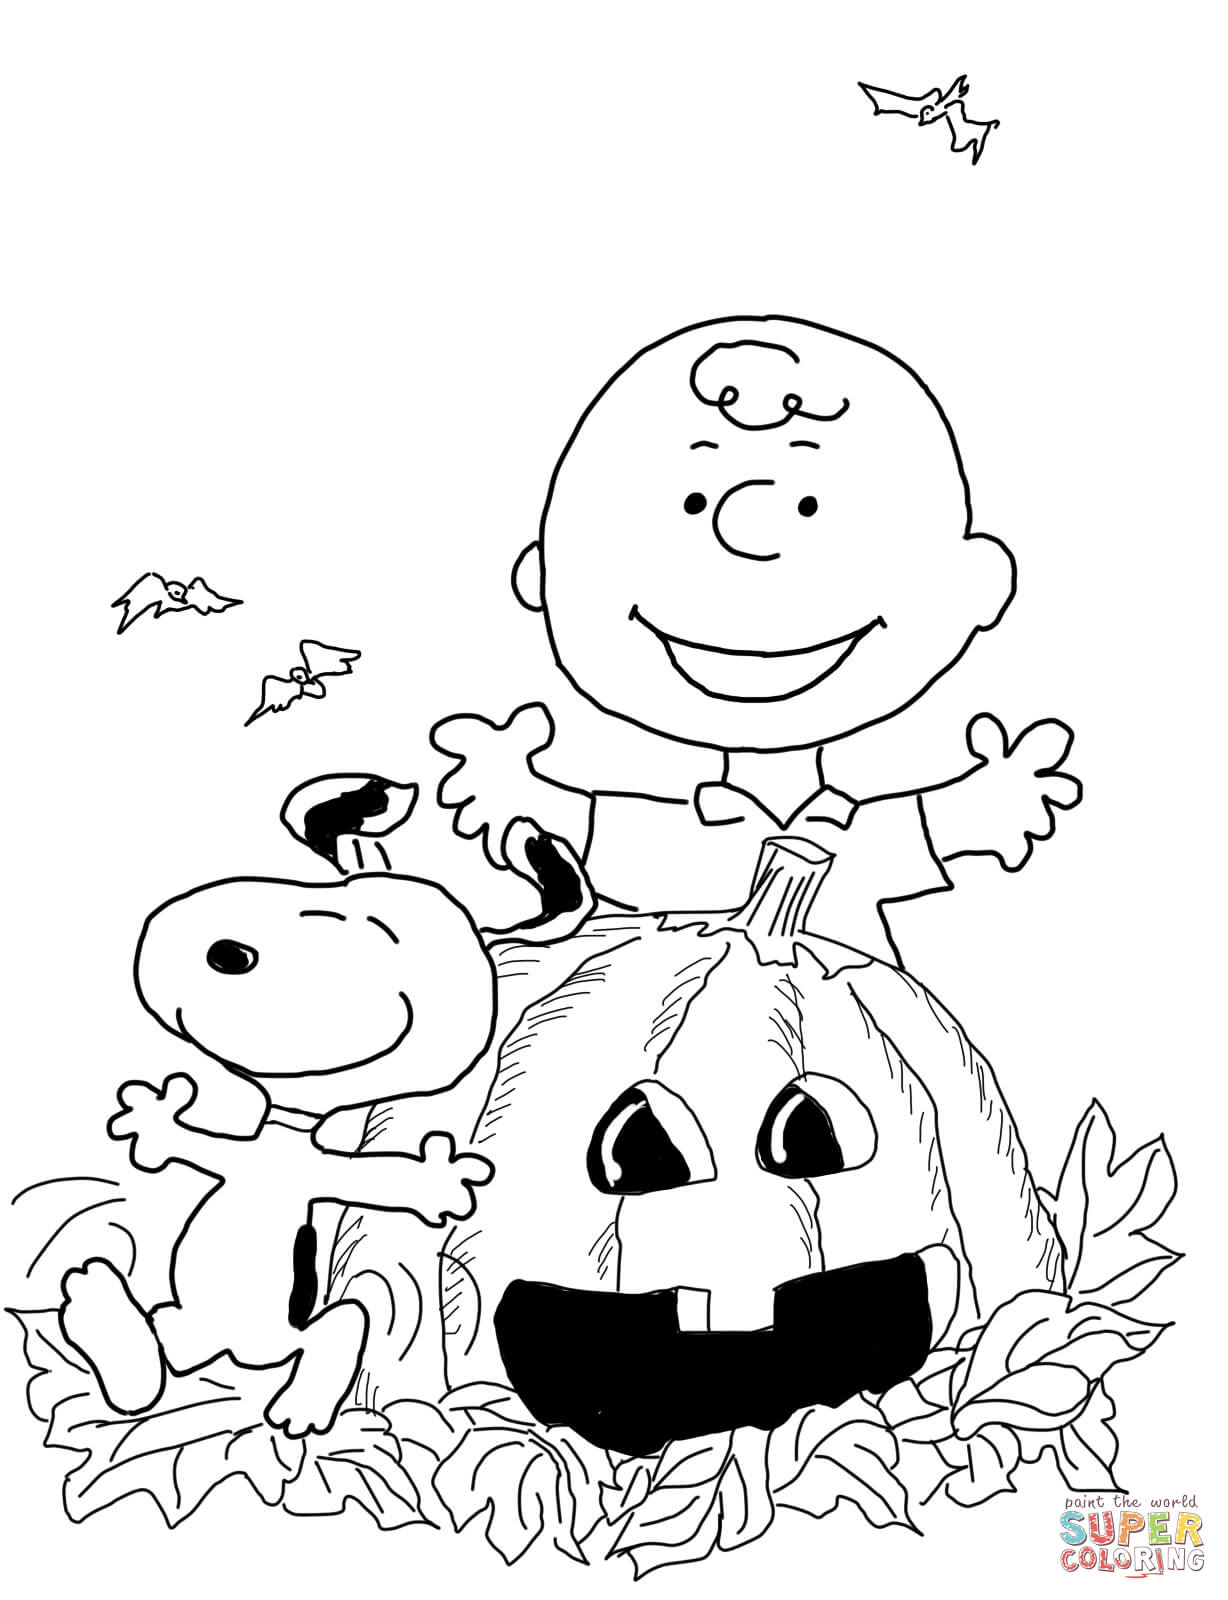 click the charlie brown halloween coloring pages color pages for